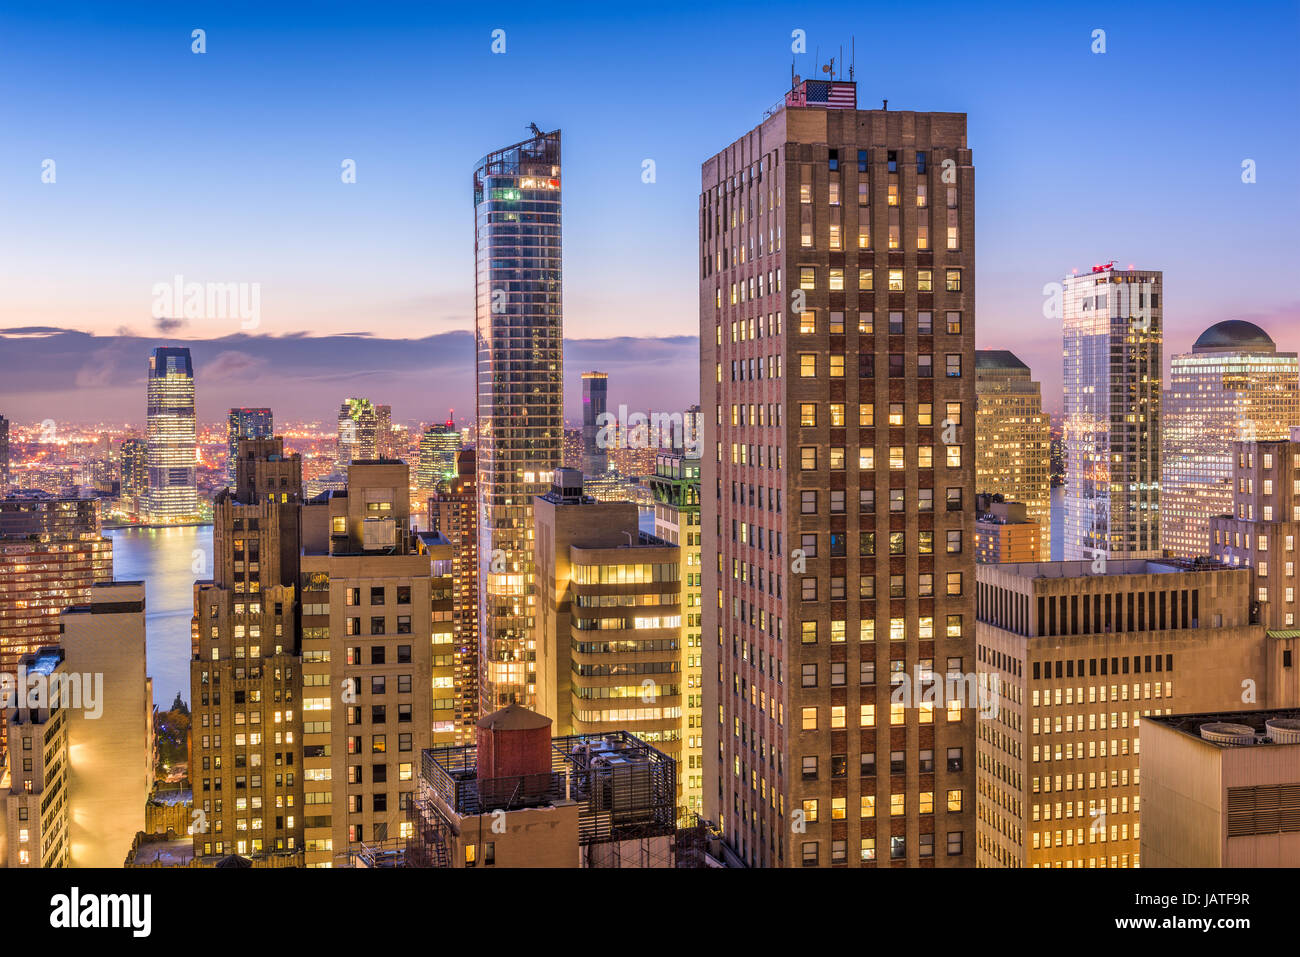 New York City Financial District paysage urbain. Photo Stock